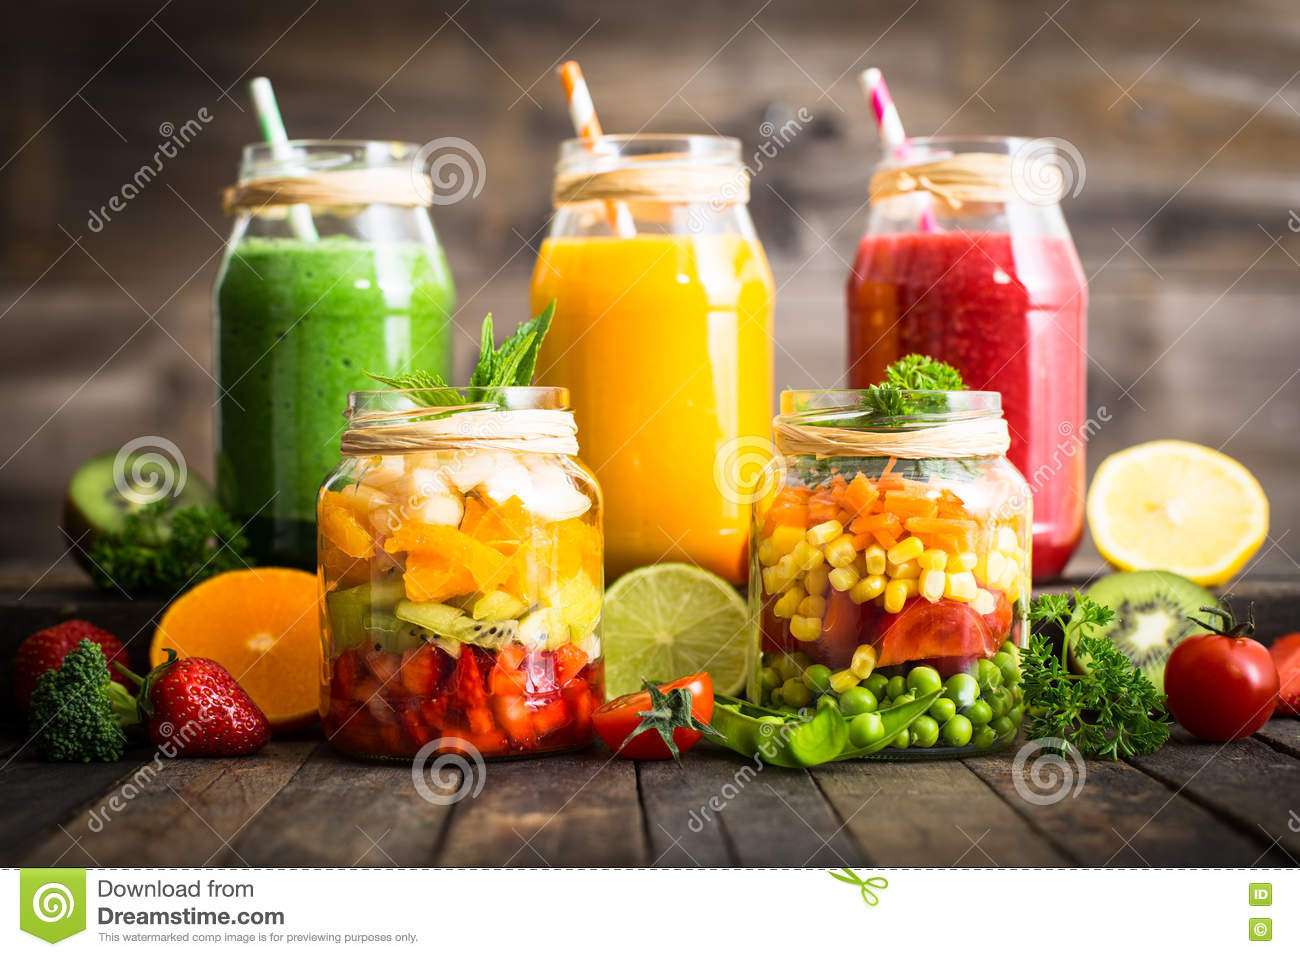 Veg And Fruit Smoothies  Healthy Fruit And Ve able Salad And Smoothies Stock